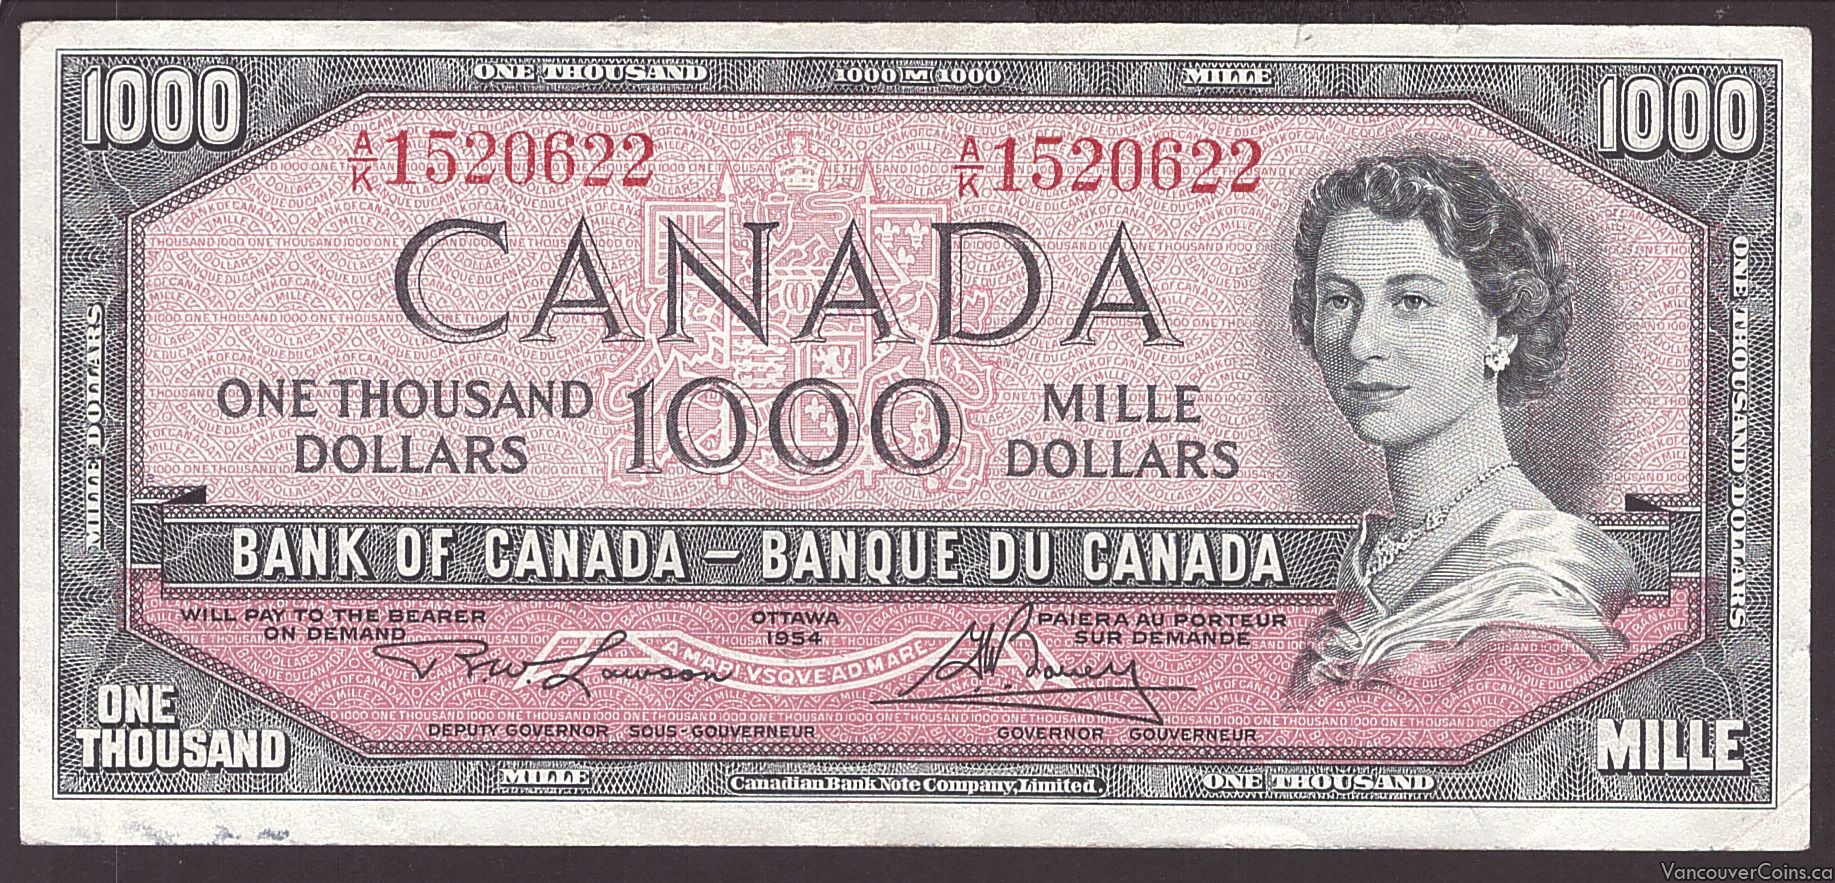 1954 Bank of Canada $1000 banknote Lawson Bouey A/K1520622